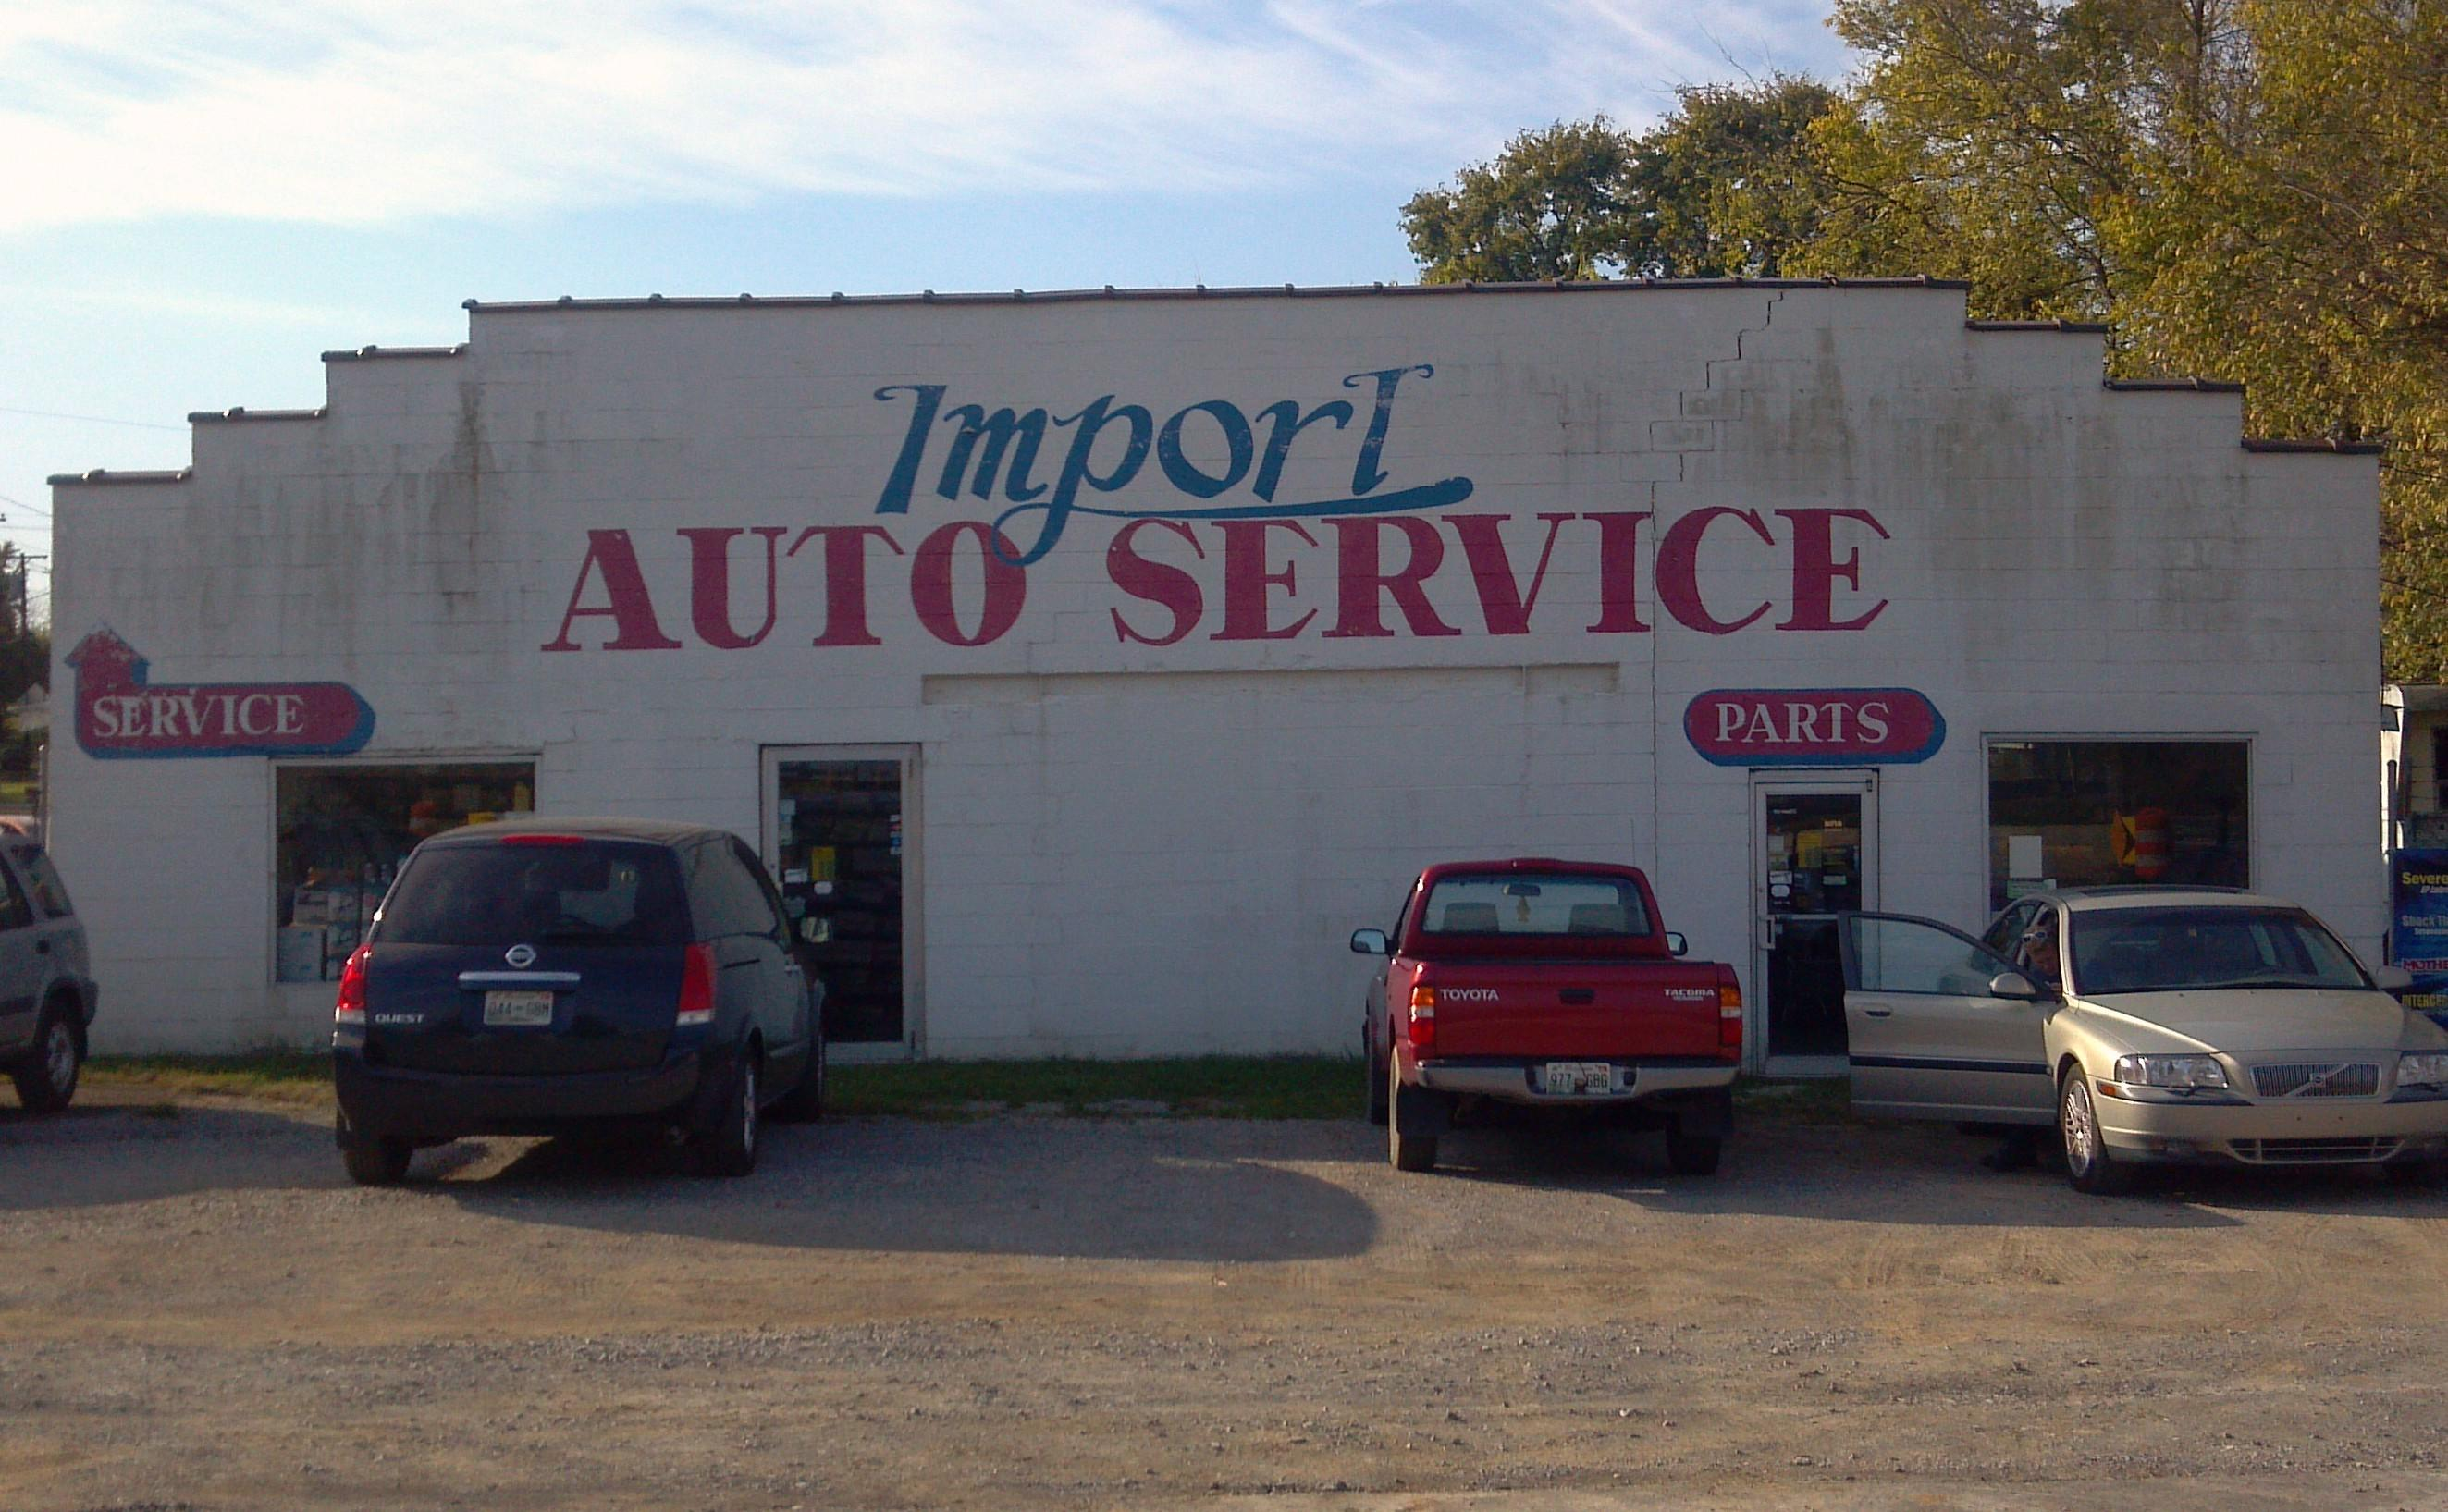 Import Auto Service, Gallatin TN